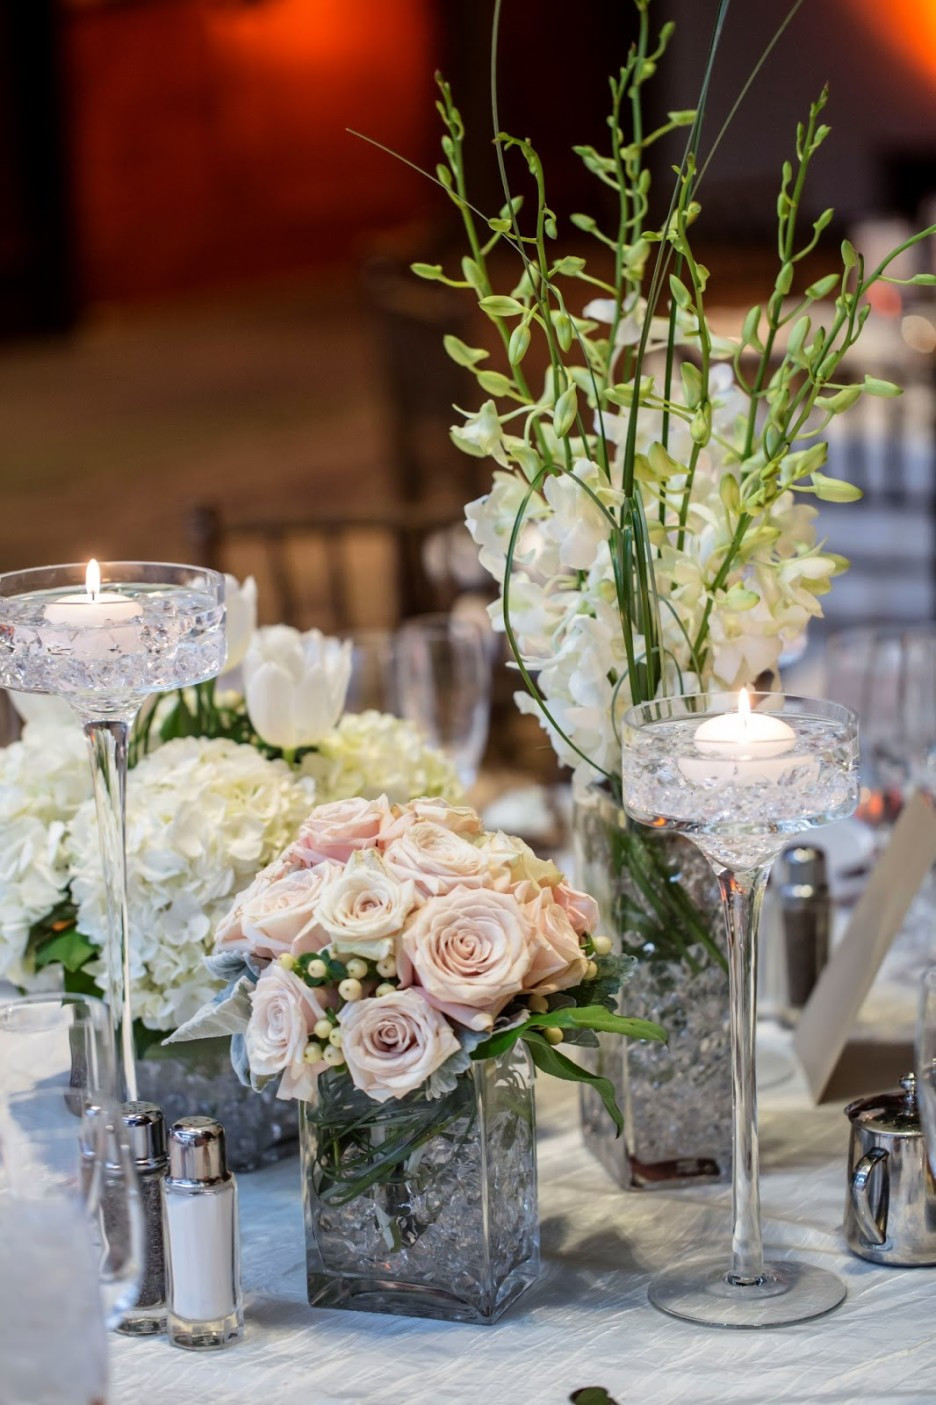 tall clear glass vases for weddings of vase table centerpiece ideas emiliesbeauty com in charming wedding table decoration with various white flower wedding table centerpiece ideas endearing image of